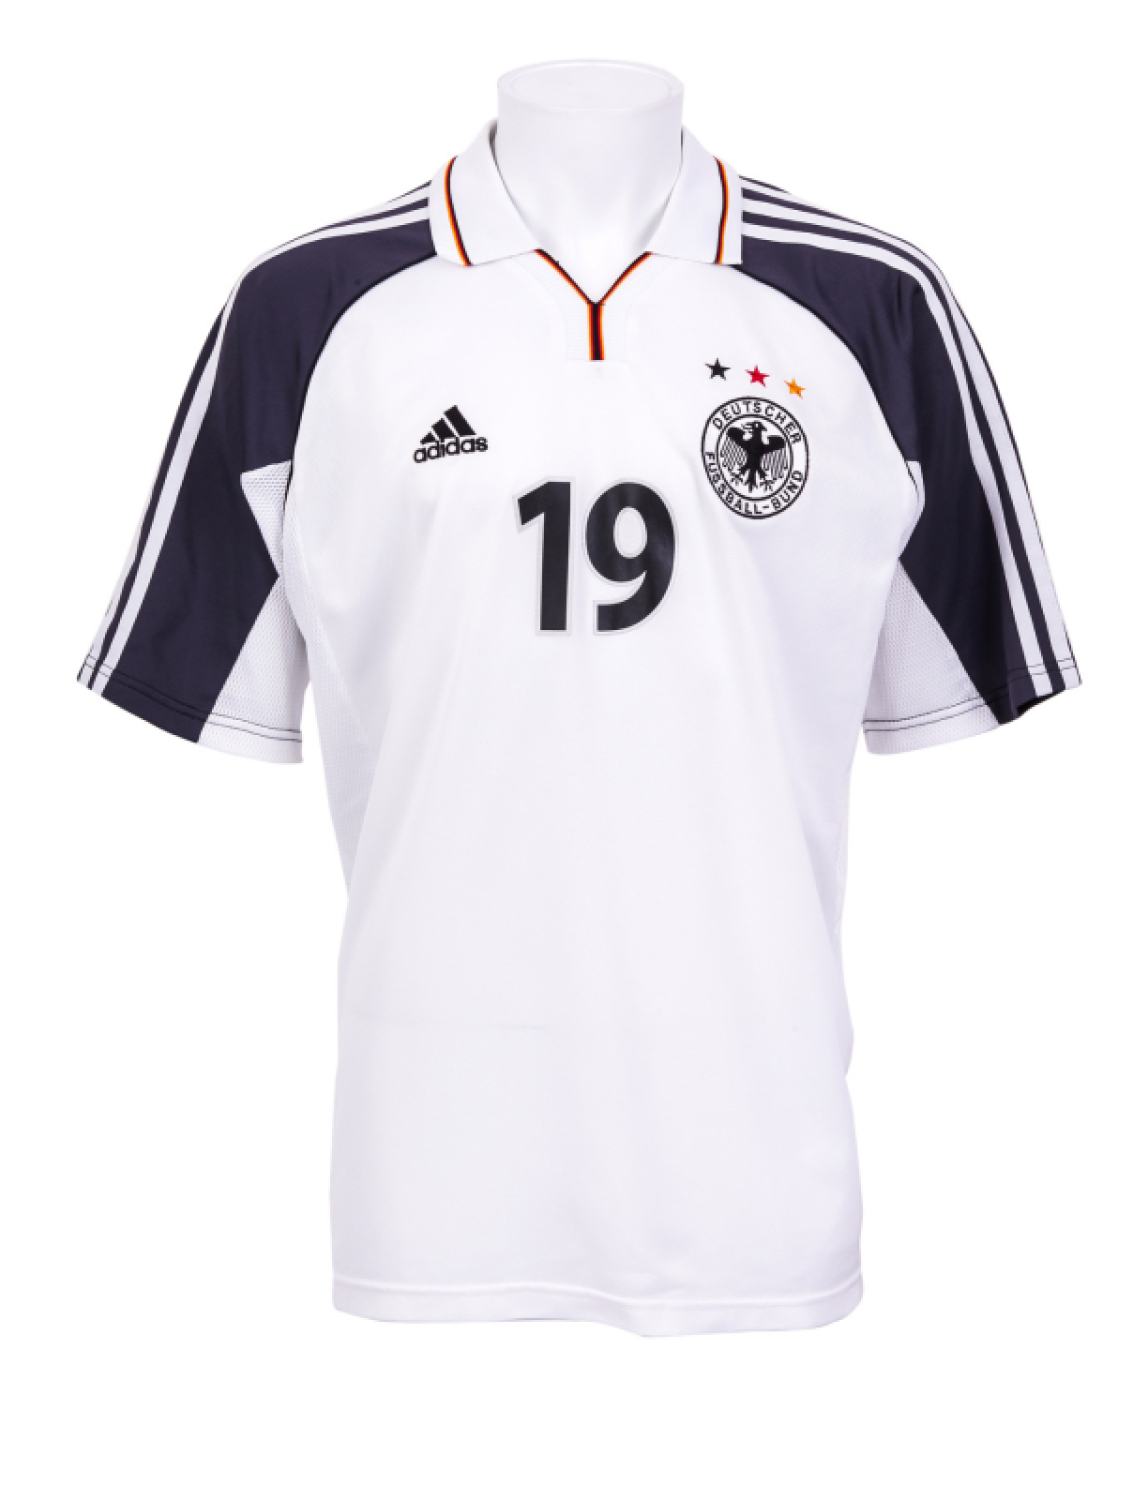 separation shoes 2b58a e8a6f 2002 GERMANY NATIONAL FOOTBALL TEAM ISSUED JERSEY - Price ...